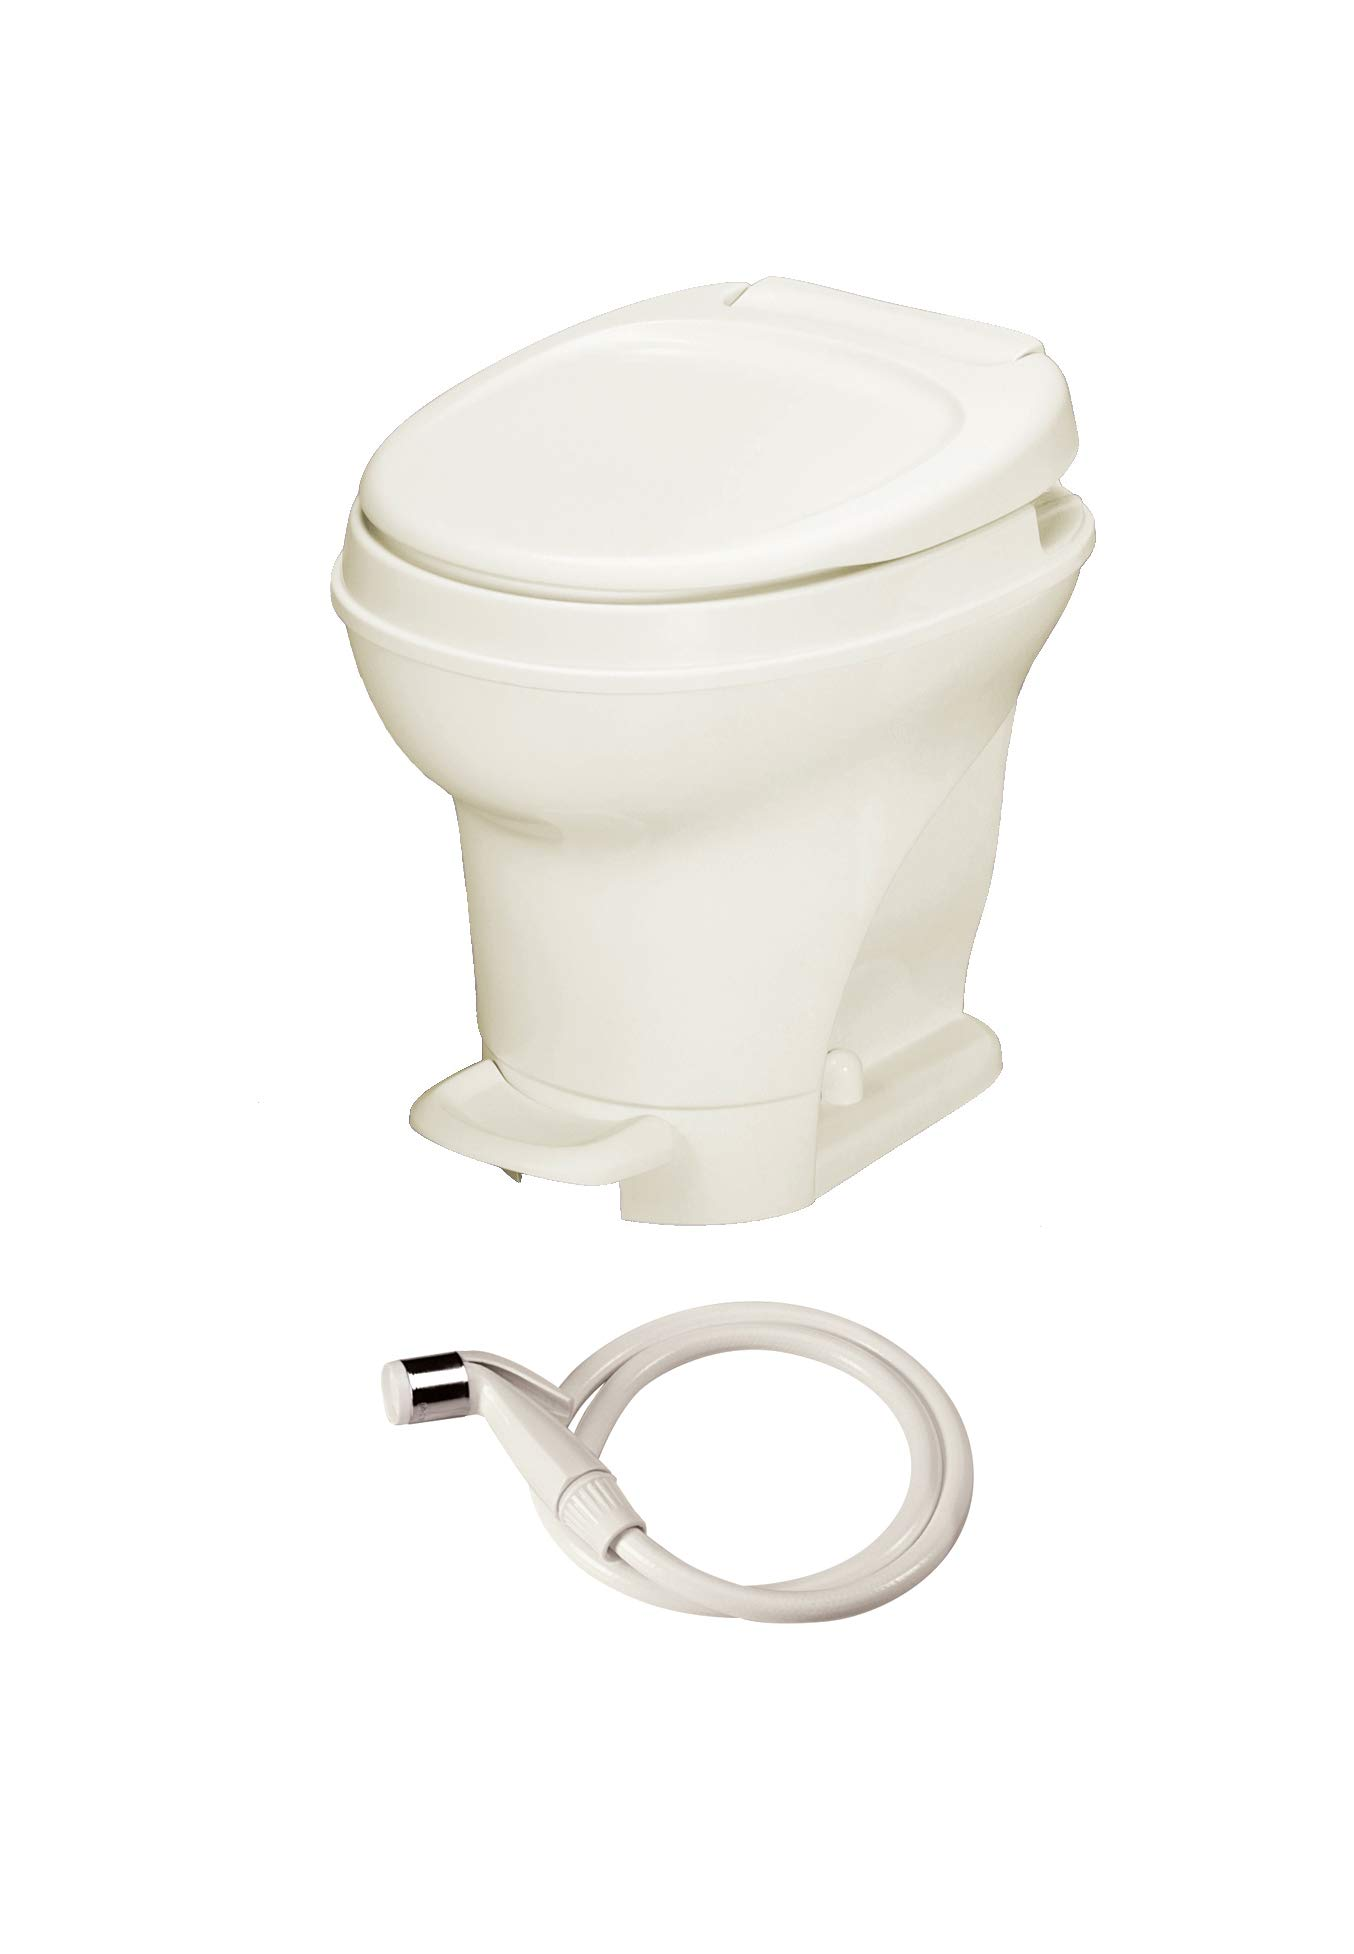 Thetford Aqua-Magic V RV Toilet-High Profile-Parchment Color-Hand Sprayer-Pedal Flush 31680 by Thetford